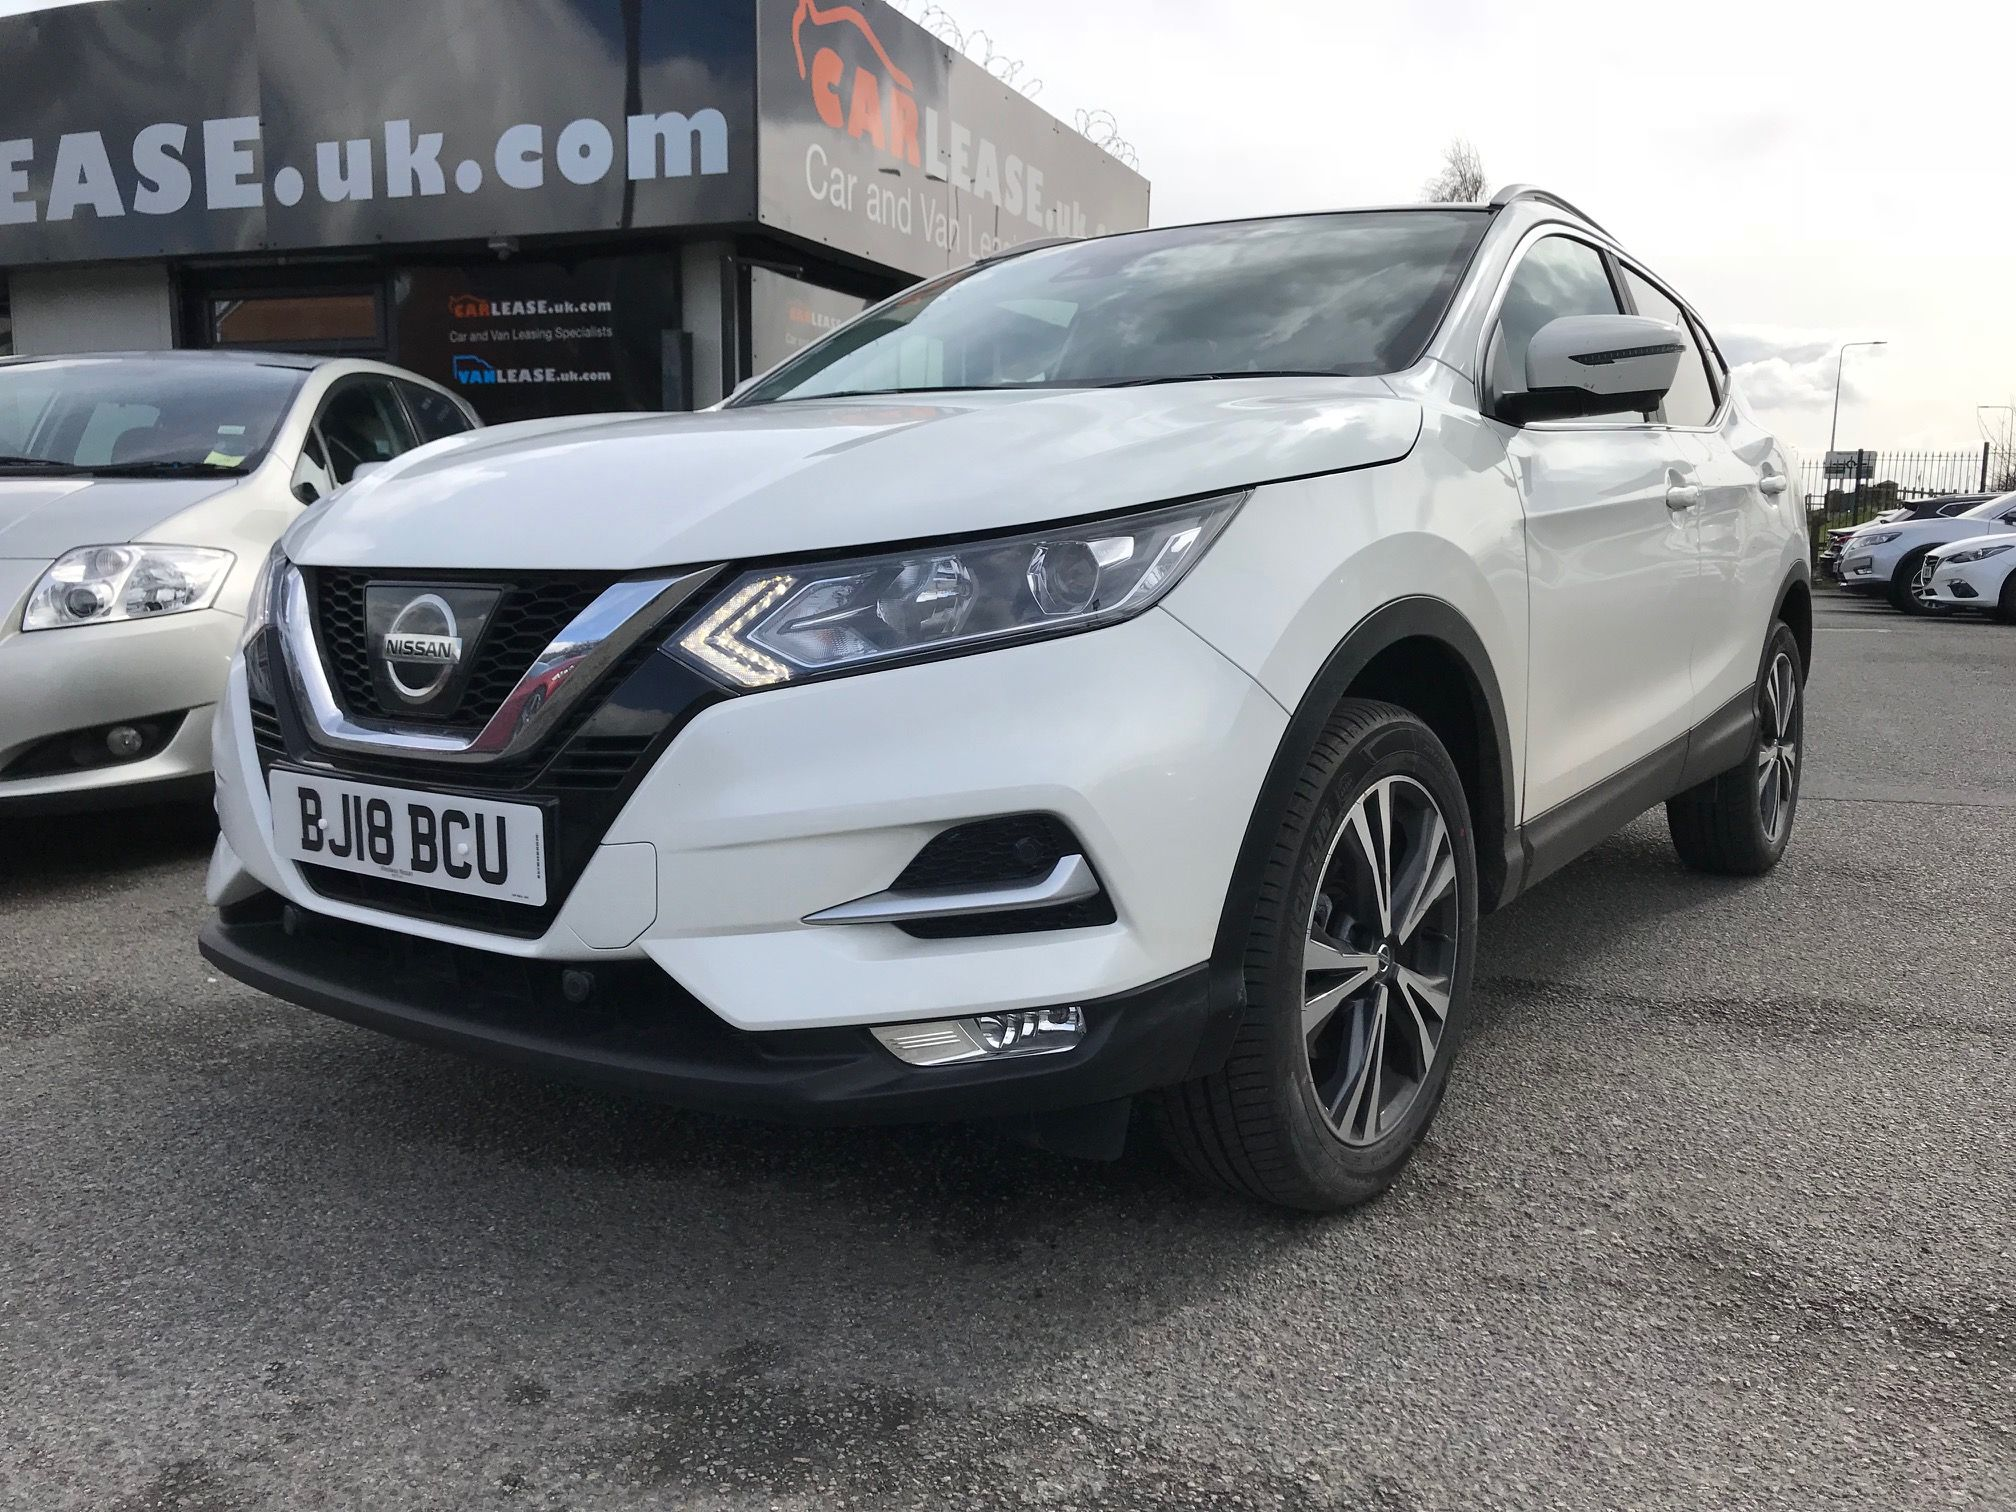 Nissan Qashqai Private Lease The Nissan Qashqai Diesel Hatchback 1 5 Dci N Connecta 5dr In